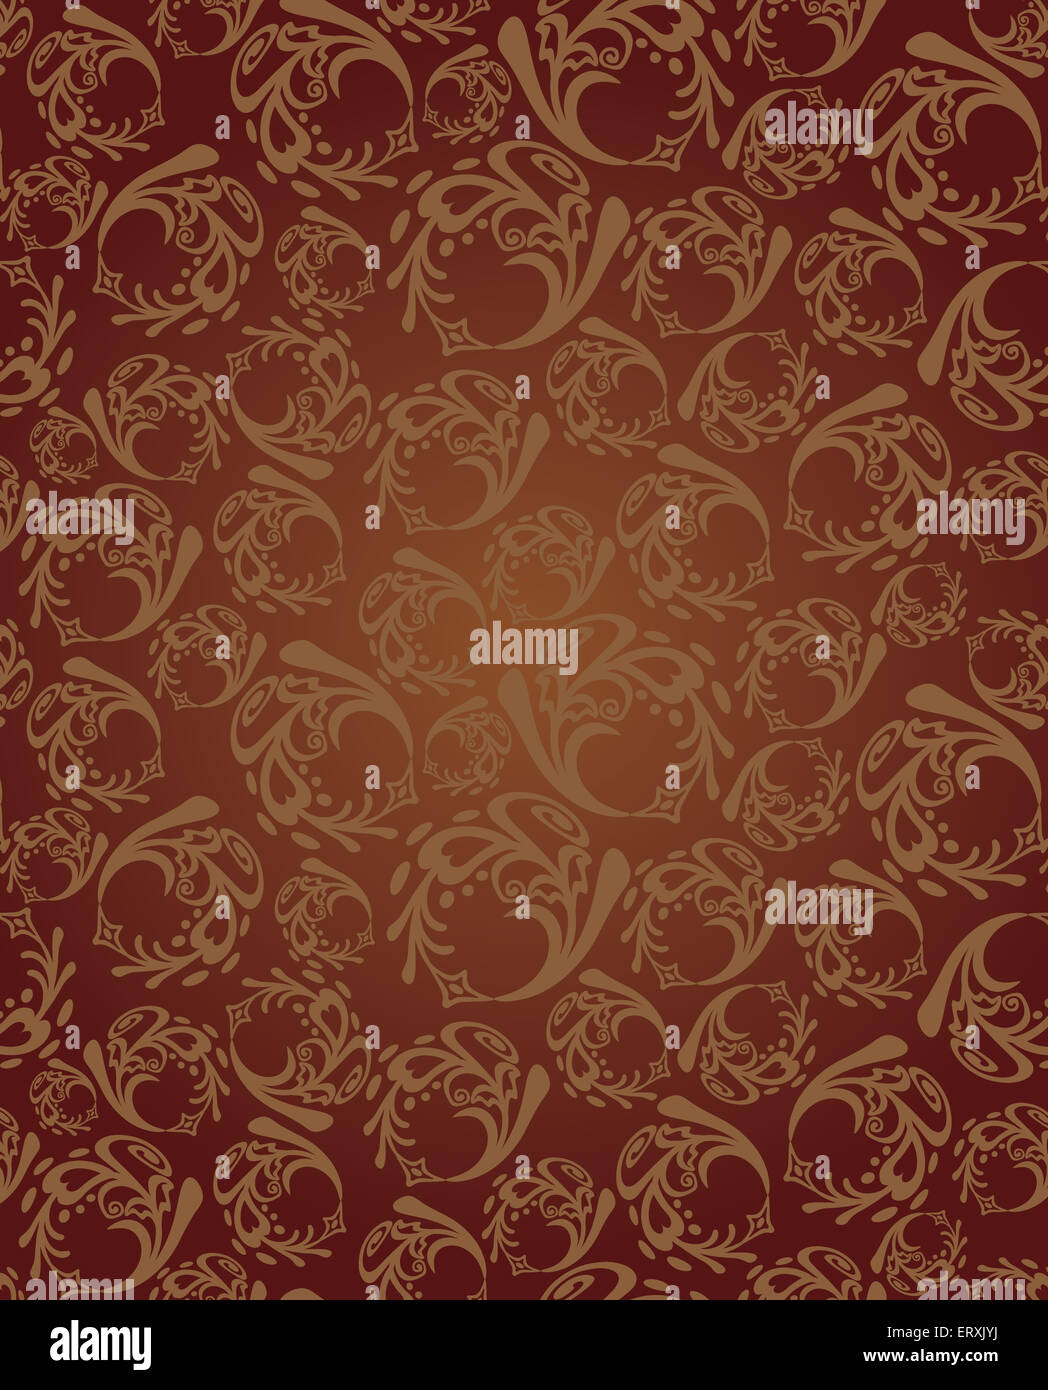 Seamless brown round wallpaper pattern background. This image is an illustration. - Stock Image